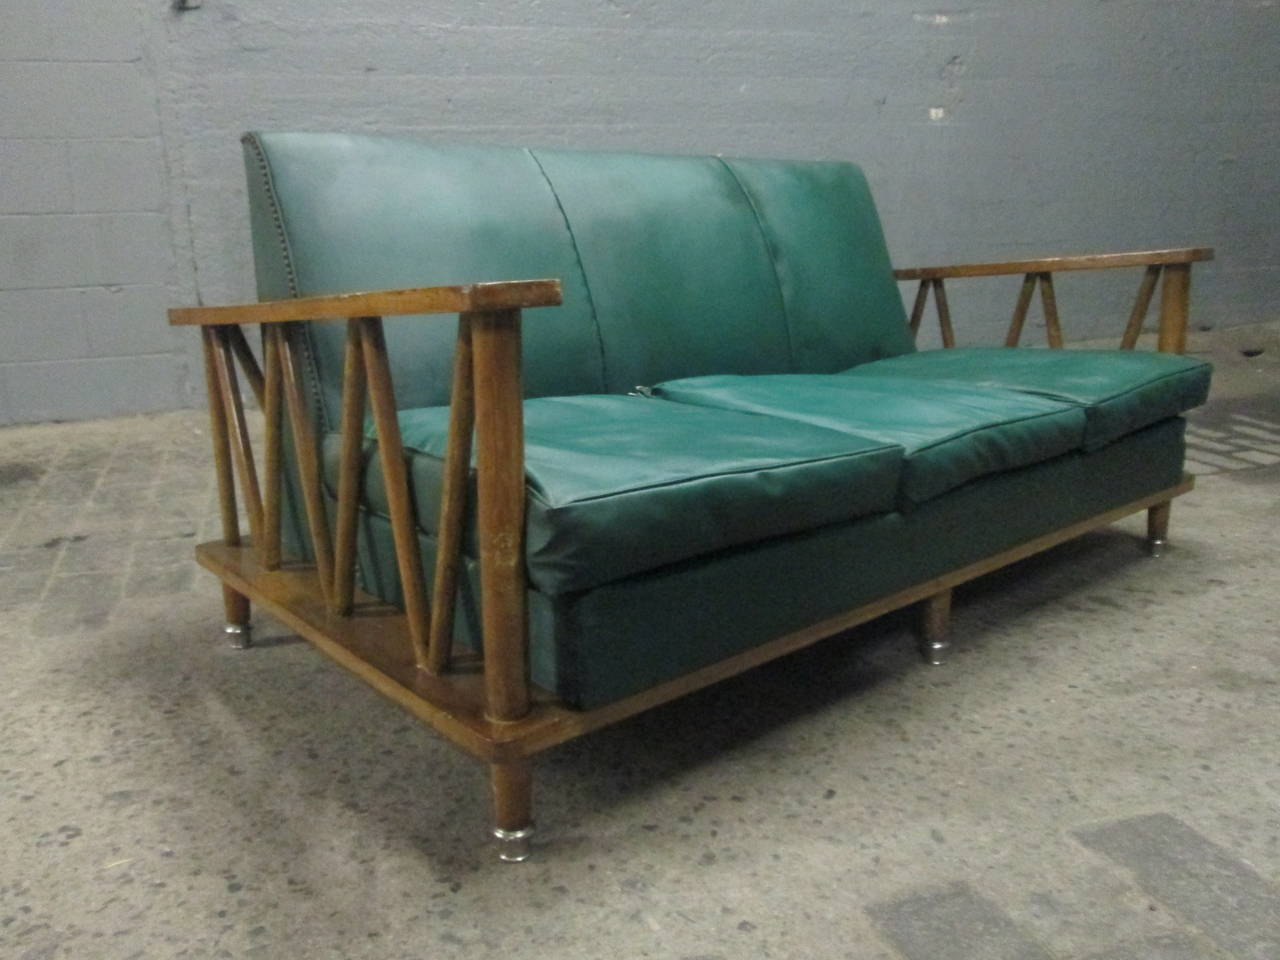 French cerused oak loveseat style of Jean Michel Frank. The feet have steel chrome-plated sabots. Original fabric. There is a pair of matching chairs listed and sold separately.